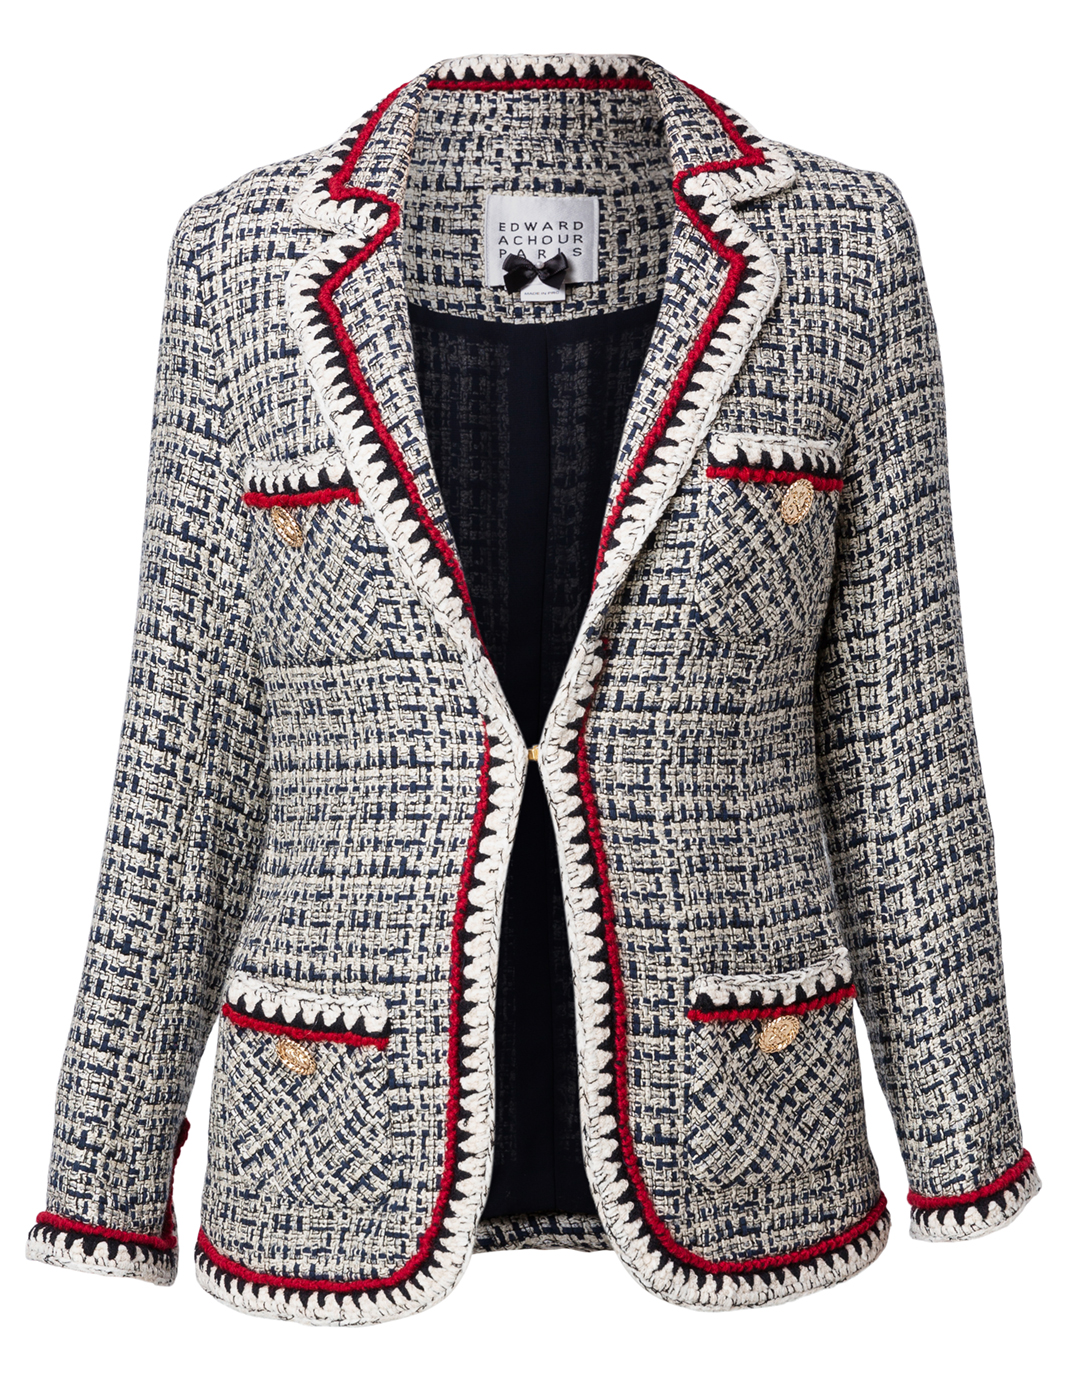 Navy and White Tweed Jacket with Crochet Trim